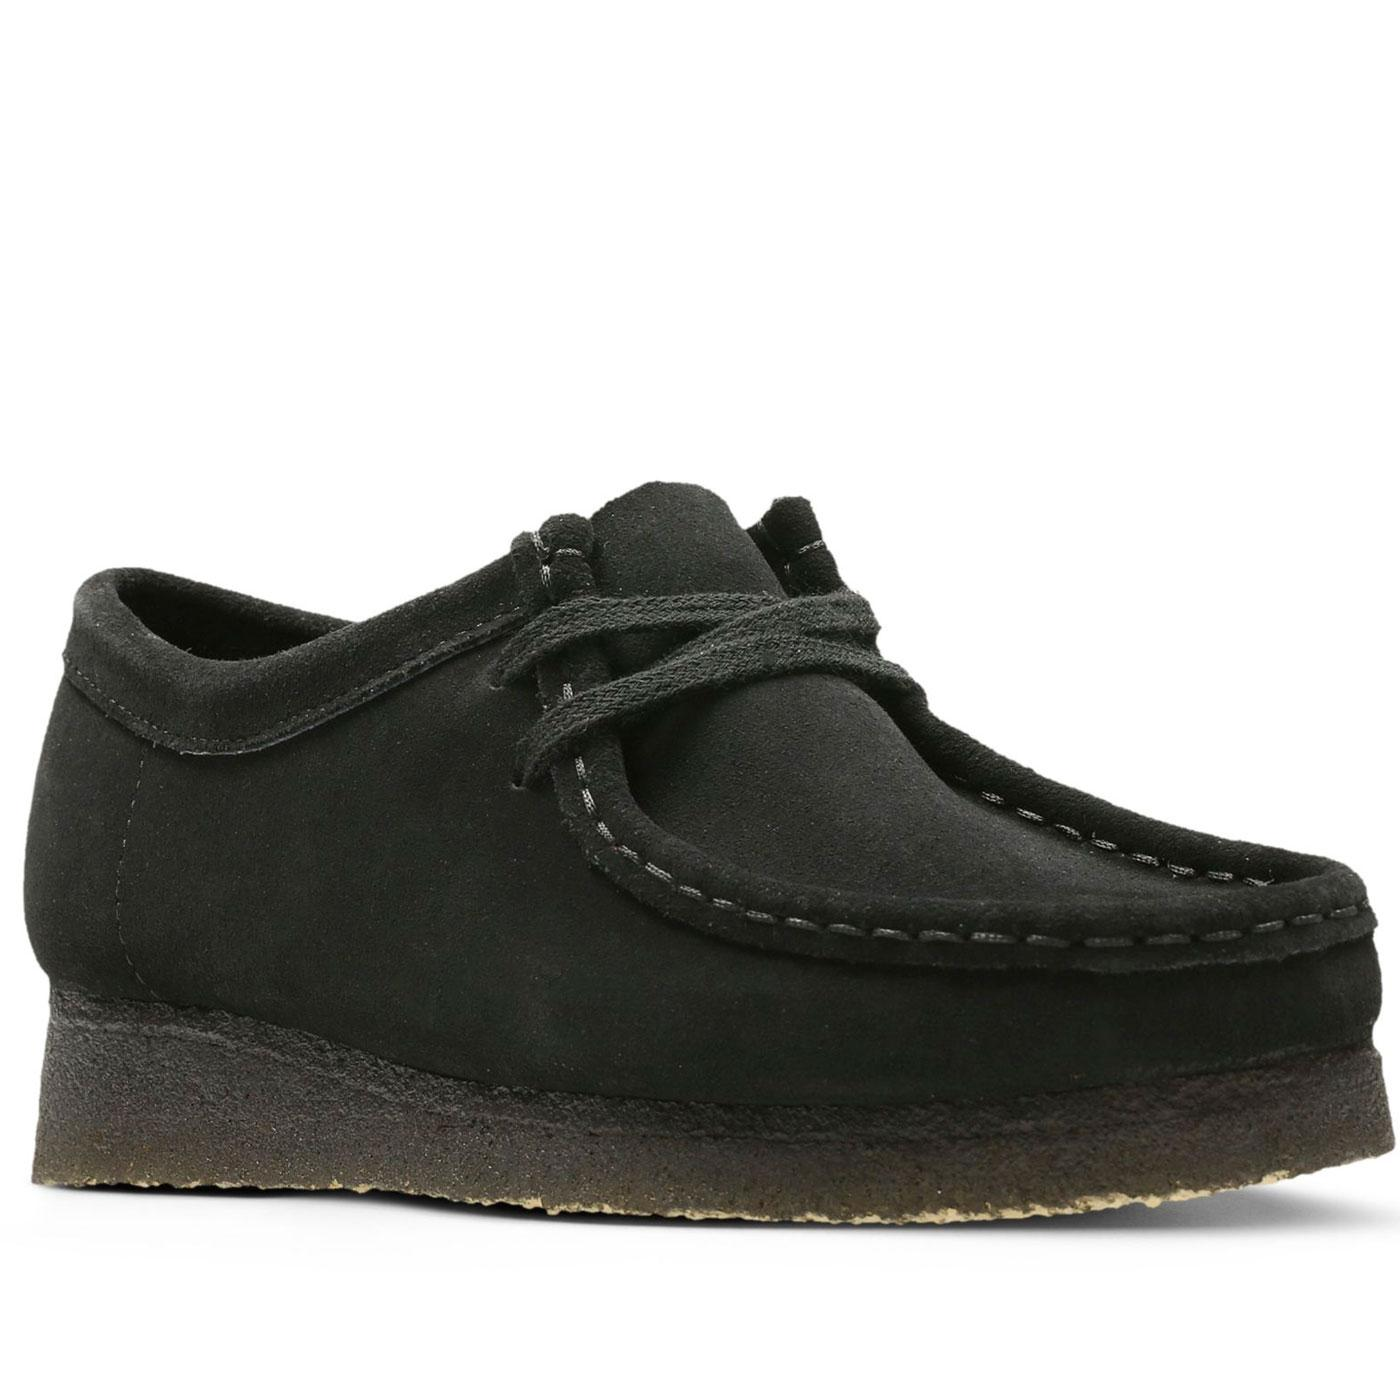 Wallabee CLARKS ORIGINALS Women's Suede Shoes (B)